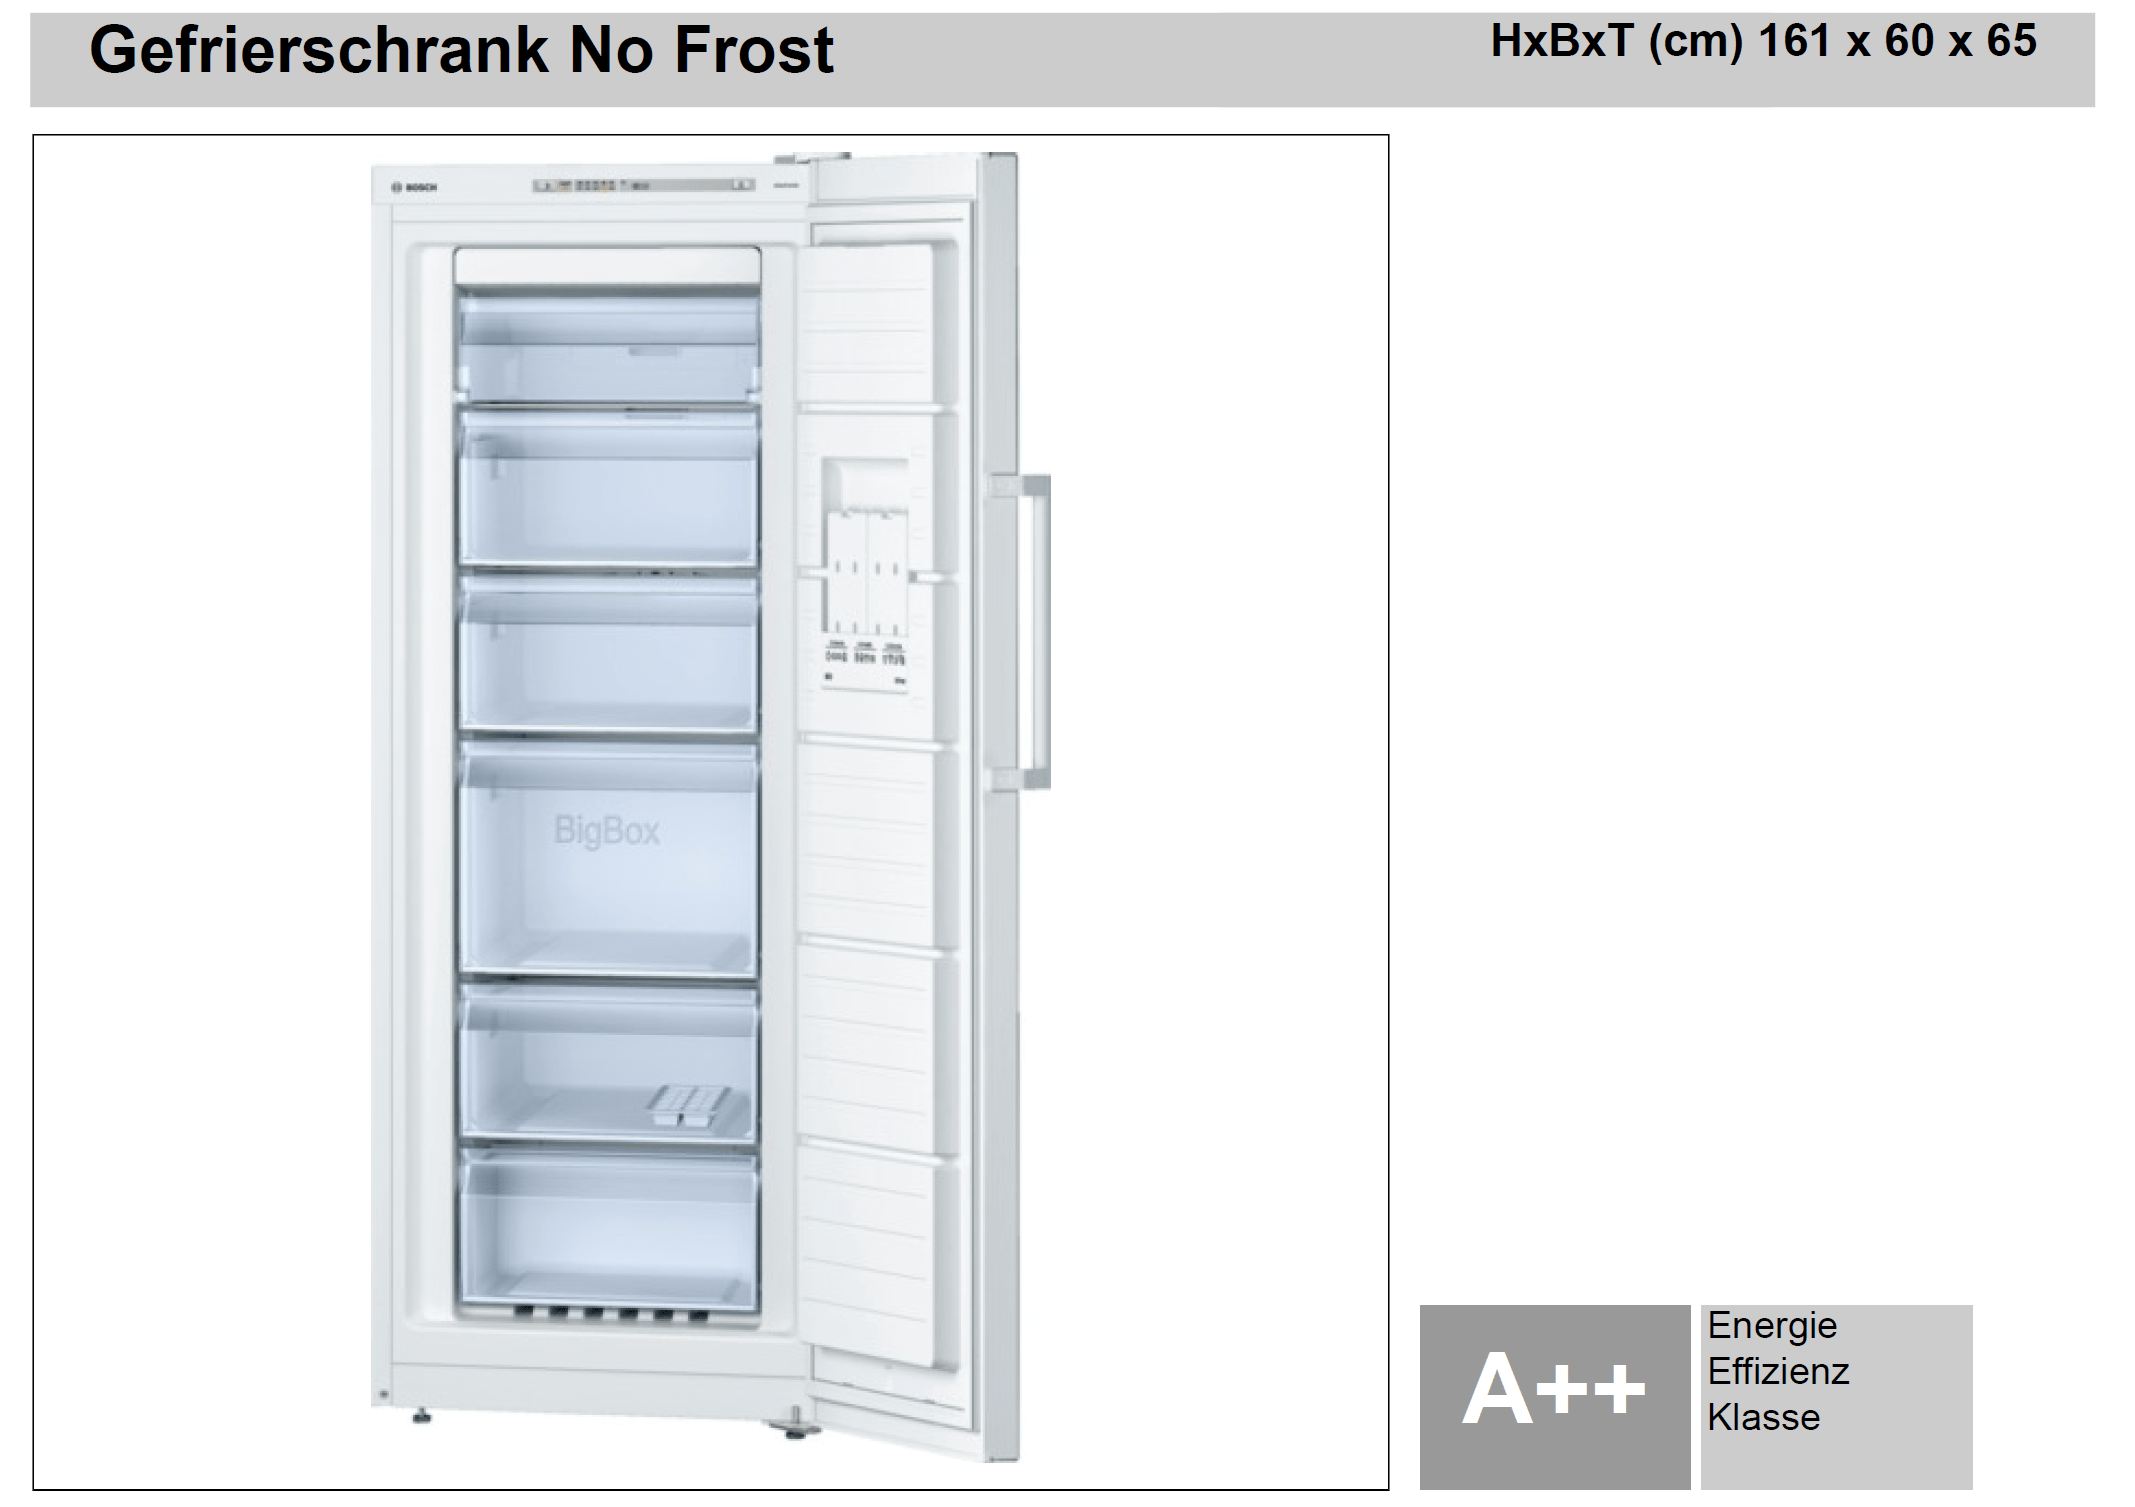 Gefrierschrank No Frost Bosch Gefrierschrank No Frost Plan And Work Elektrotechnik